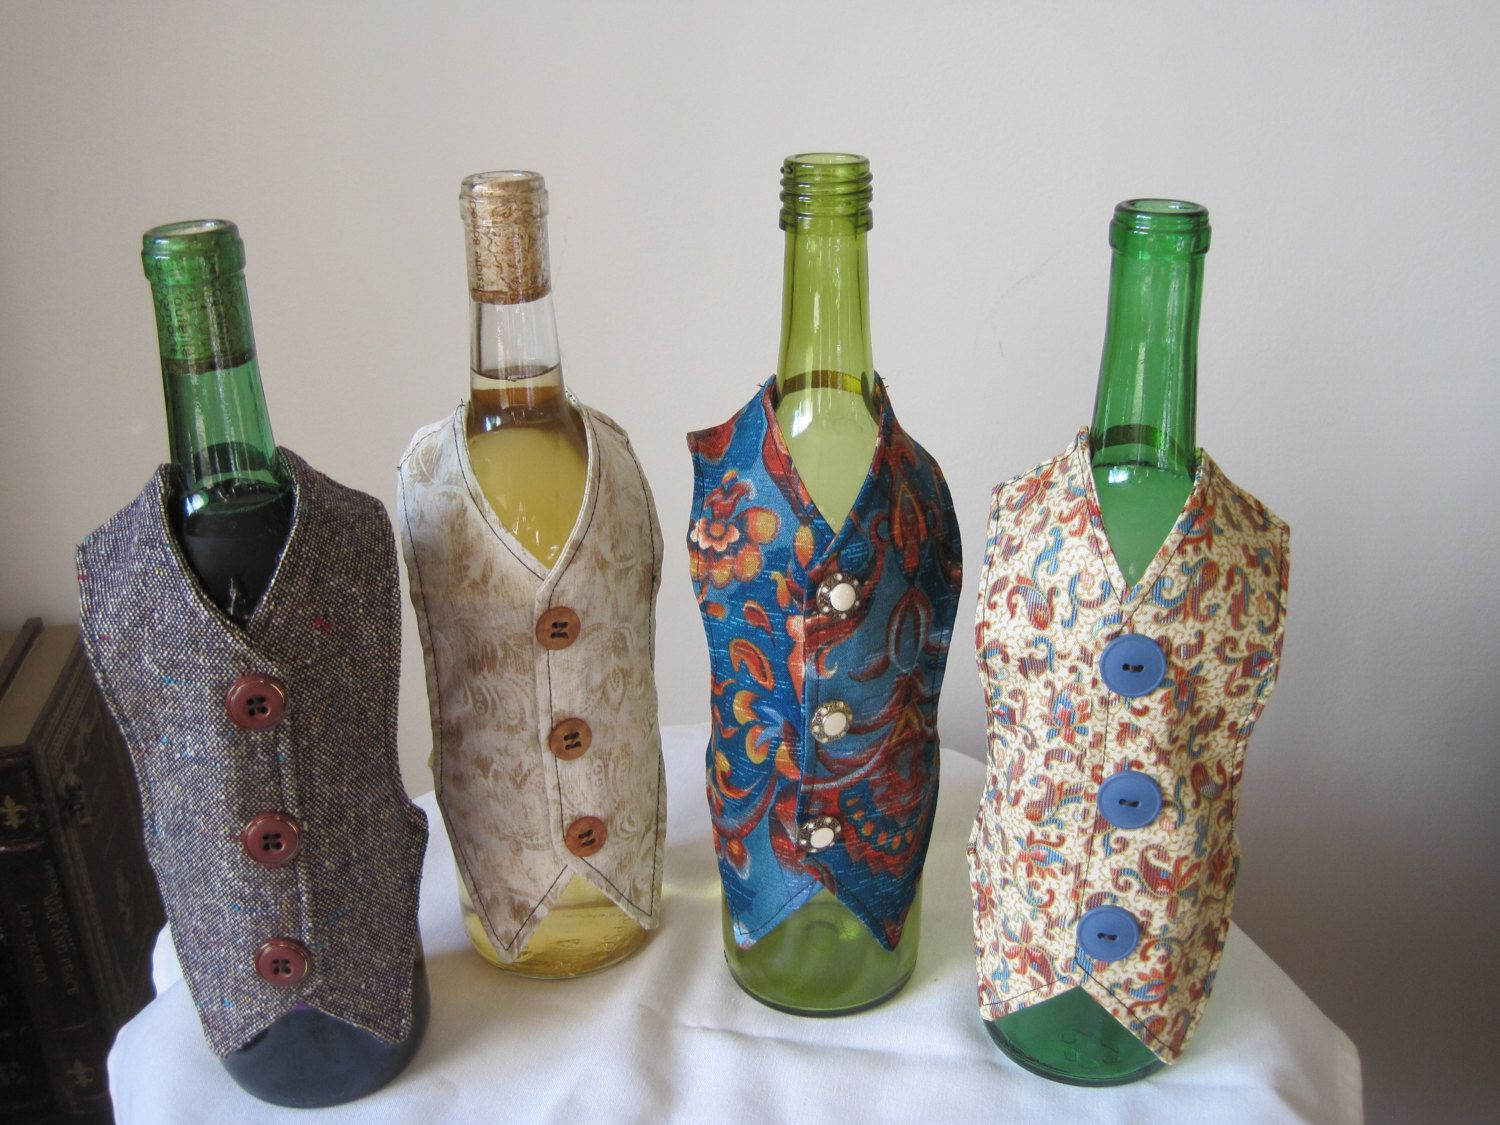 How To Decorate A Wine Bottle For A Gift Decoraciones De Botellas De Vino Fundas De Por Footlessdesigns